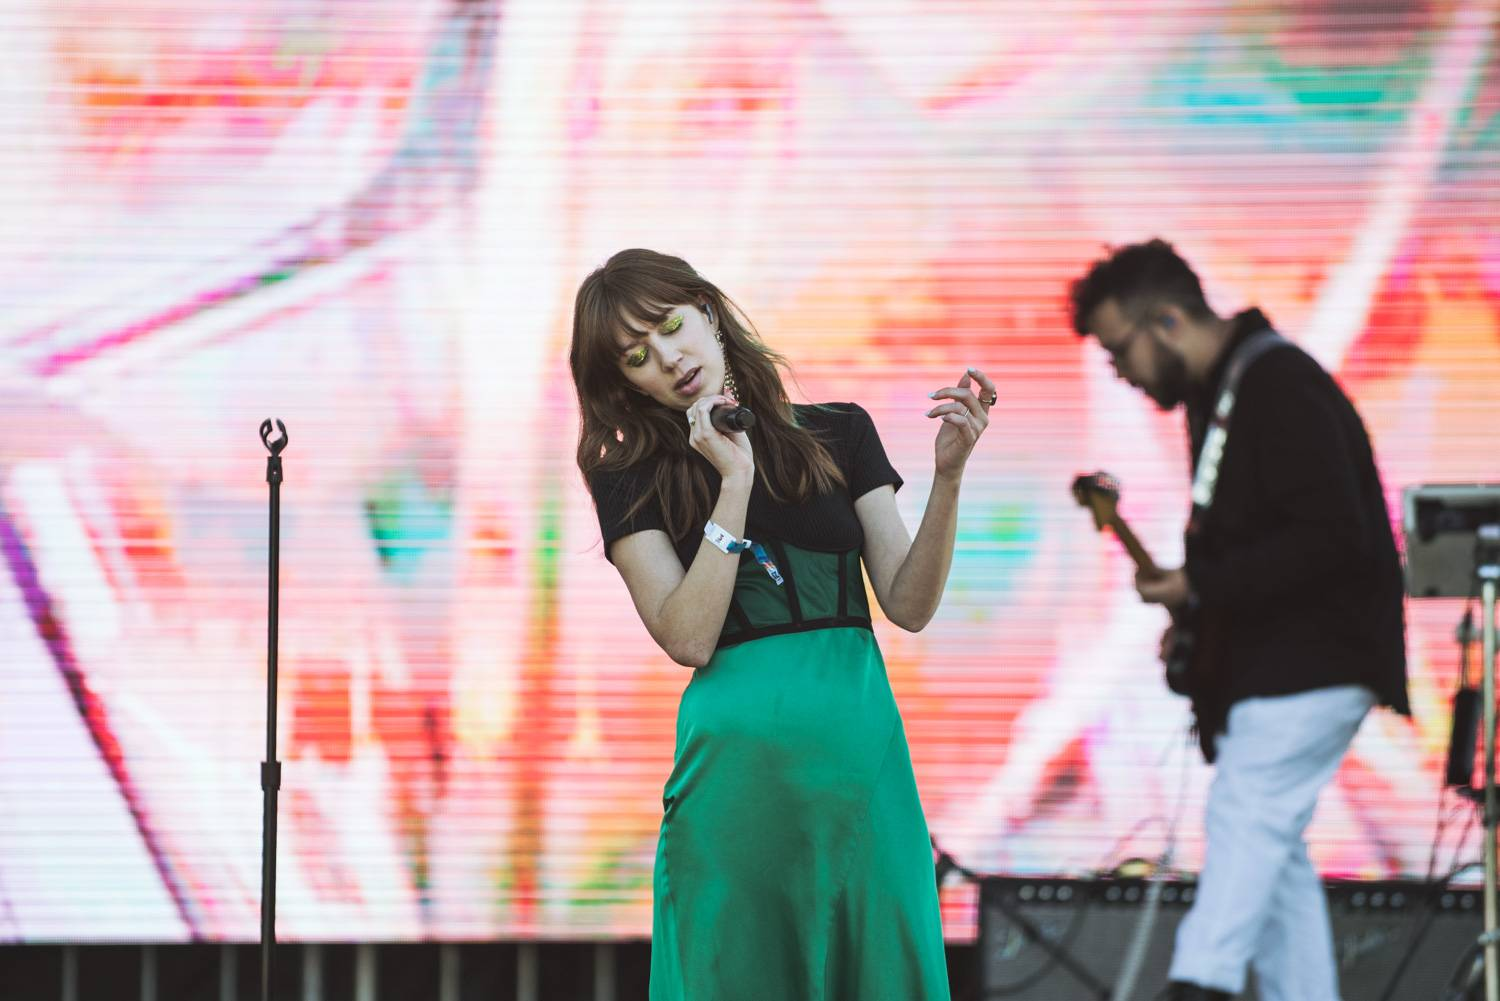 Ella Vos at the Bumbershoot Music Festival 2018 - Day 3. Sept 2 2018. Pavel Boiko photo.